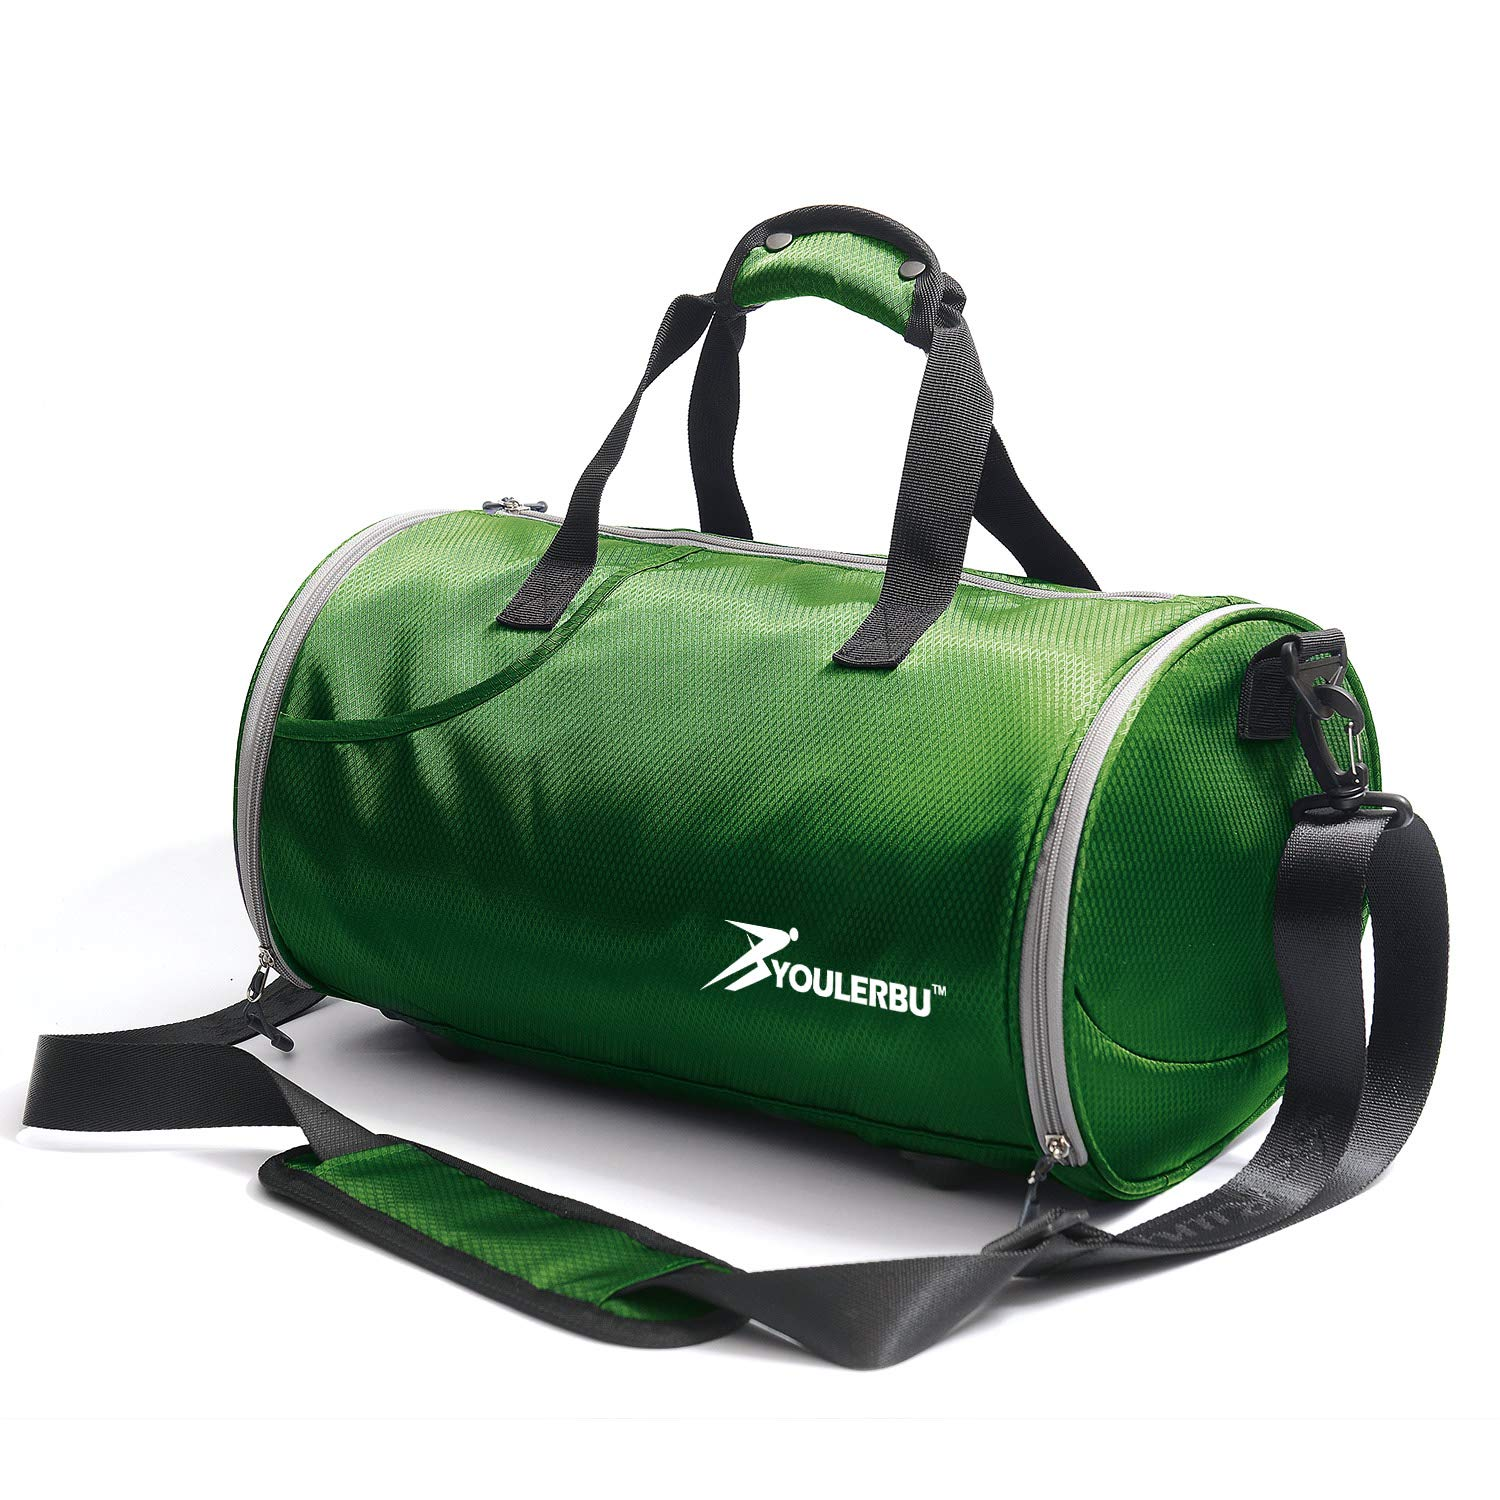 4d250122a80 Youlerbu Fitness Sports Small Gym Bag with Shoes Compartment Waterproof  Travel Duffel Bag for Women Men Kids